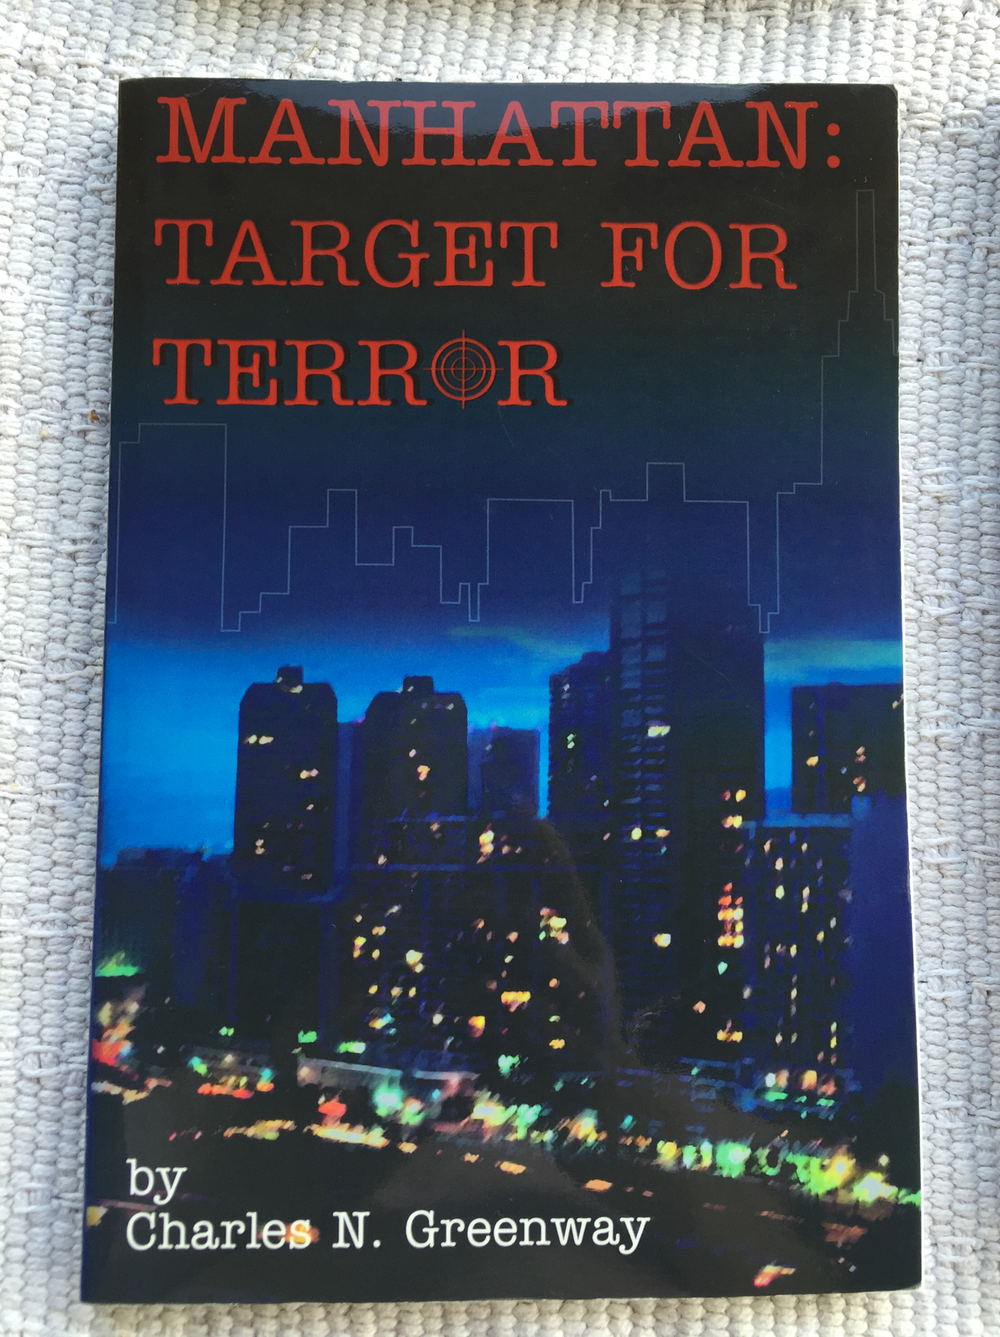 Manhatten-Terror-Cover.png